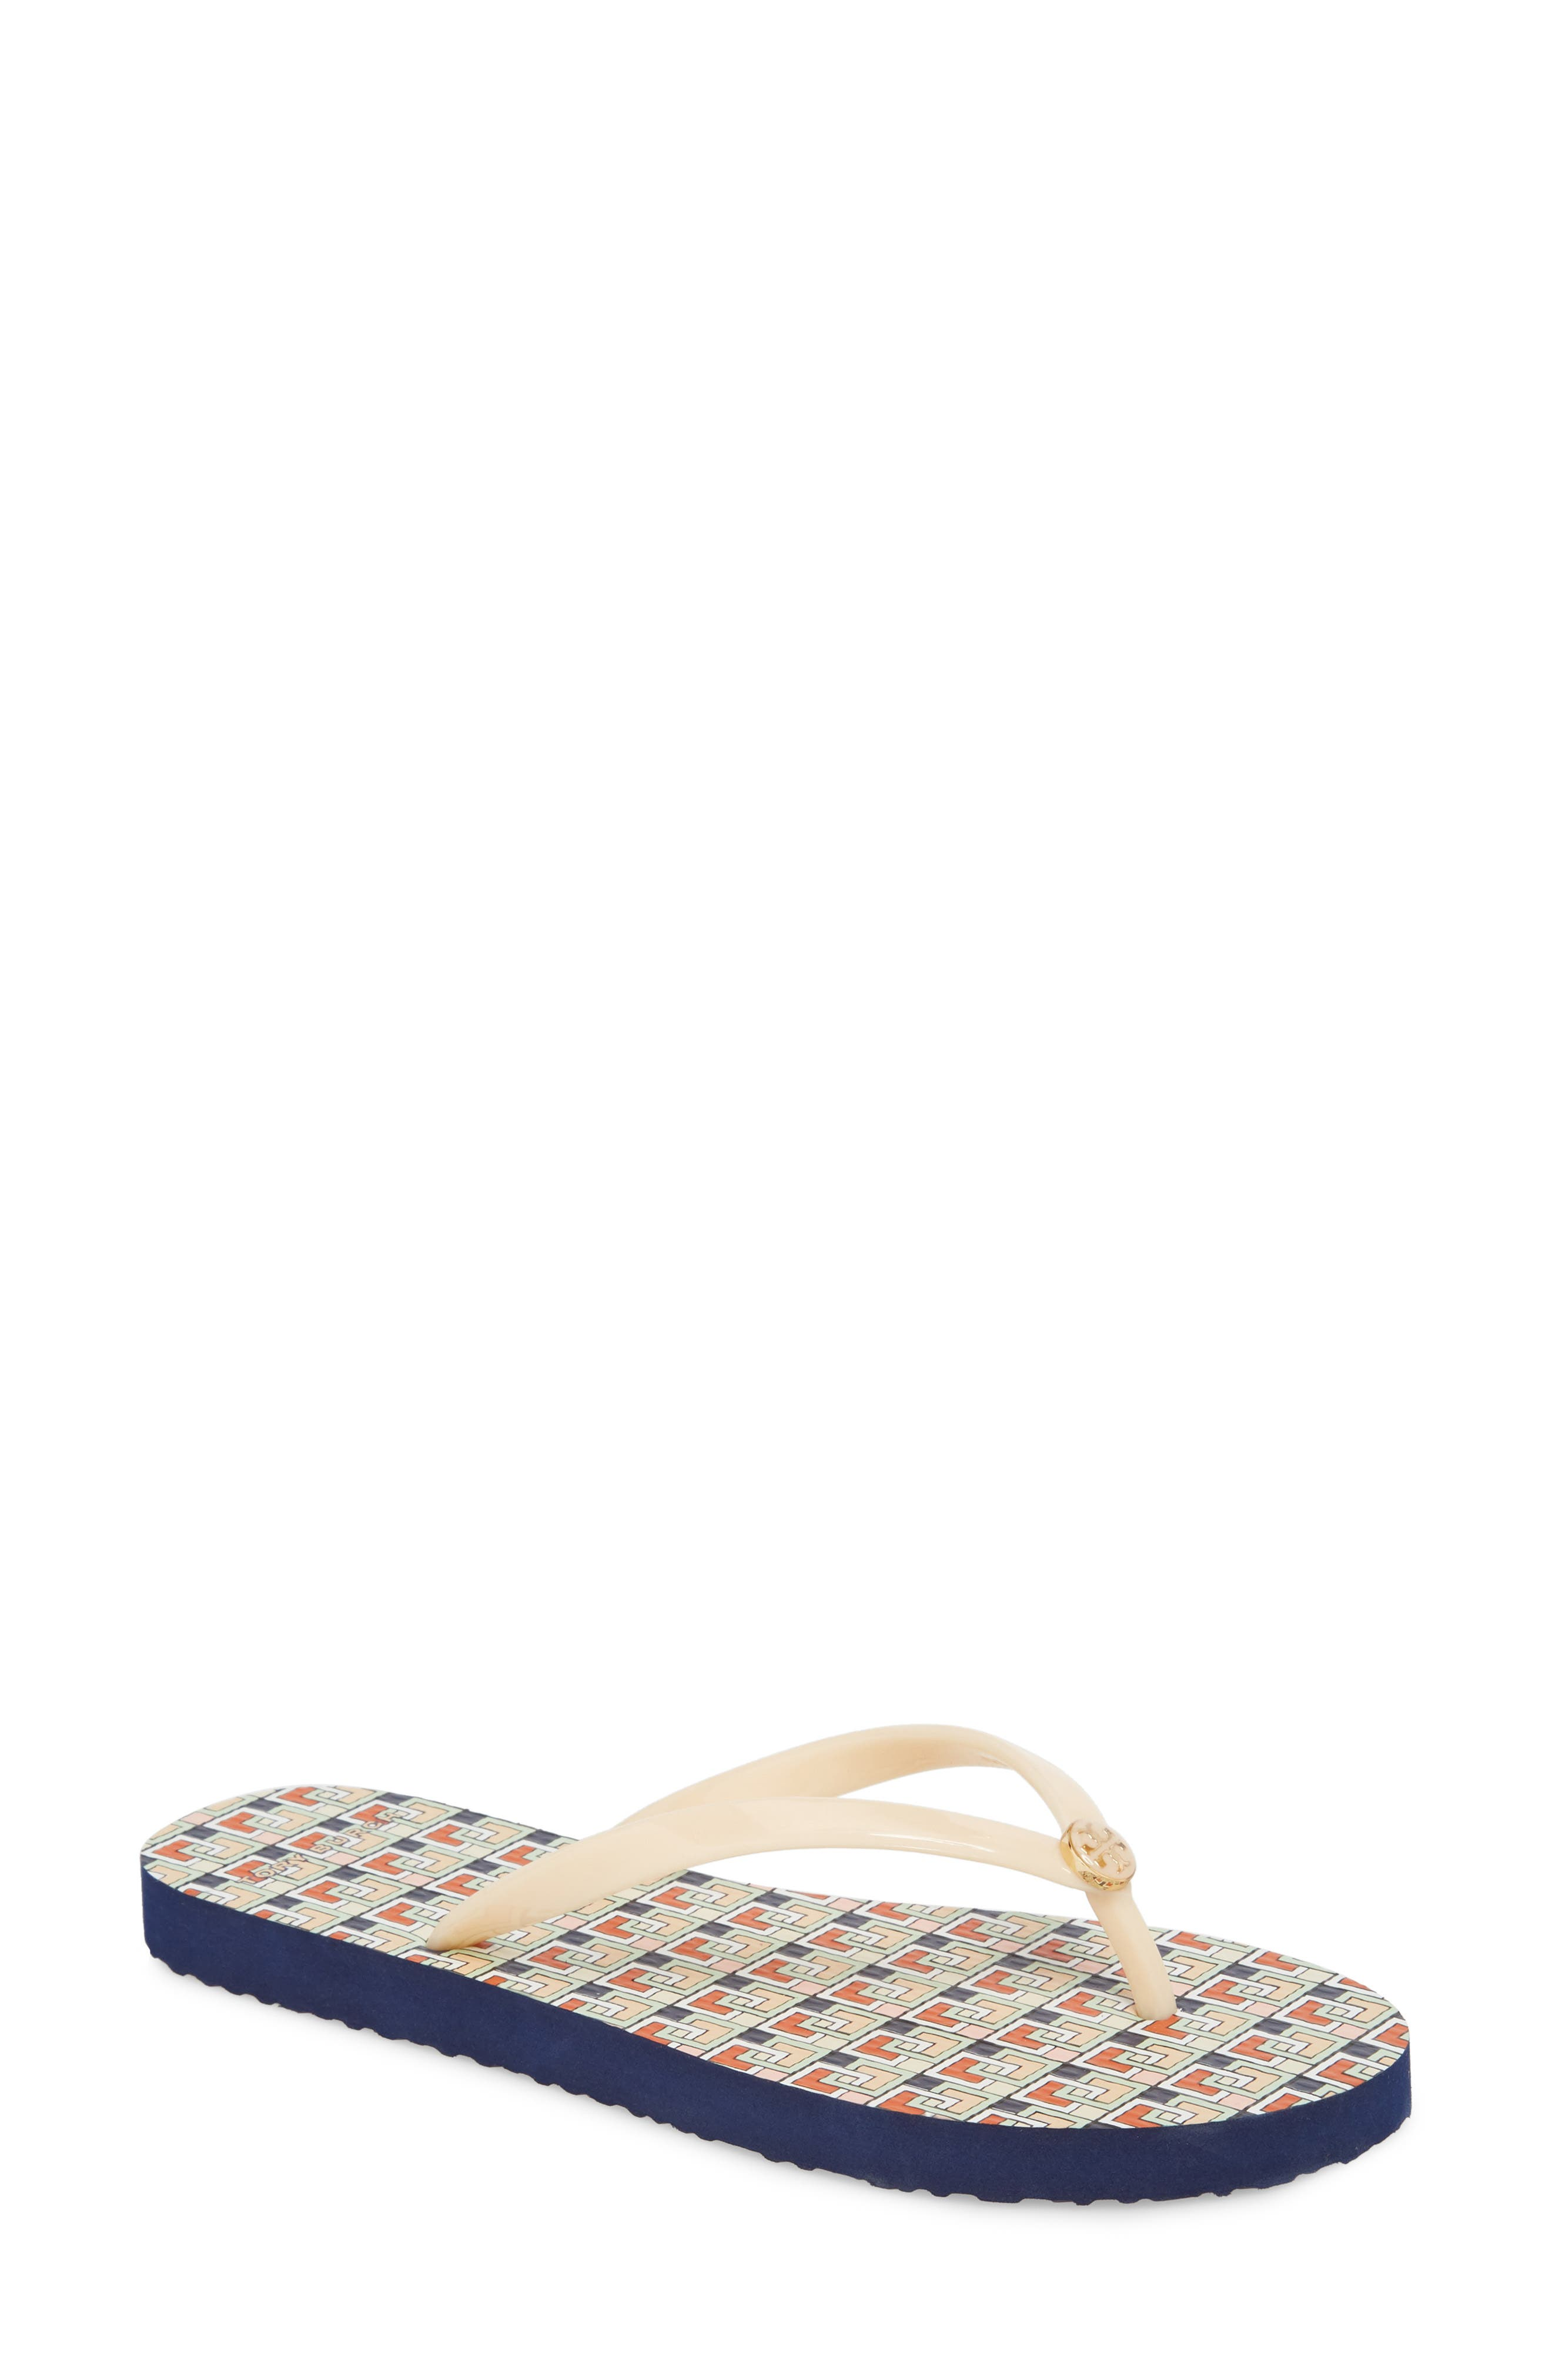 100% Guaranteed Cheap Price Tory Burch Woman Crystal And Faux Pearl-embellished Leather Slides Navy Size 6 Tory Burch Sale 2018 Unisex Under 70 Dollars Supply For Sale Shop For Cheap Price zFU8j74